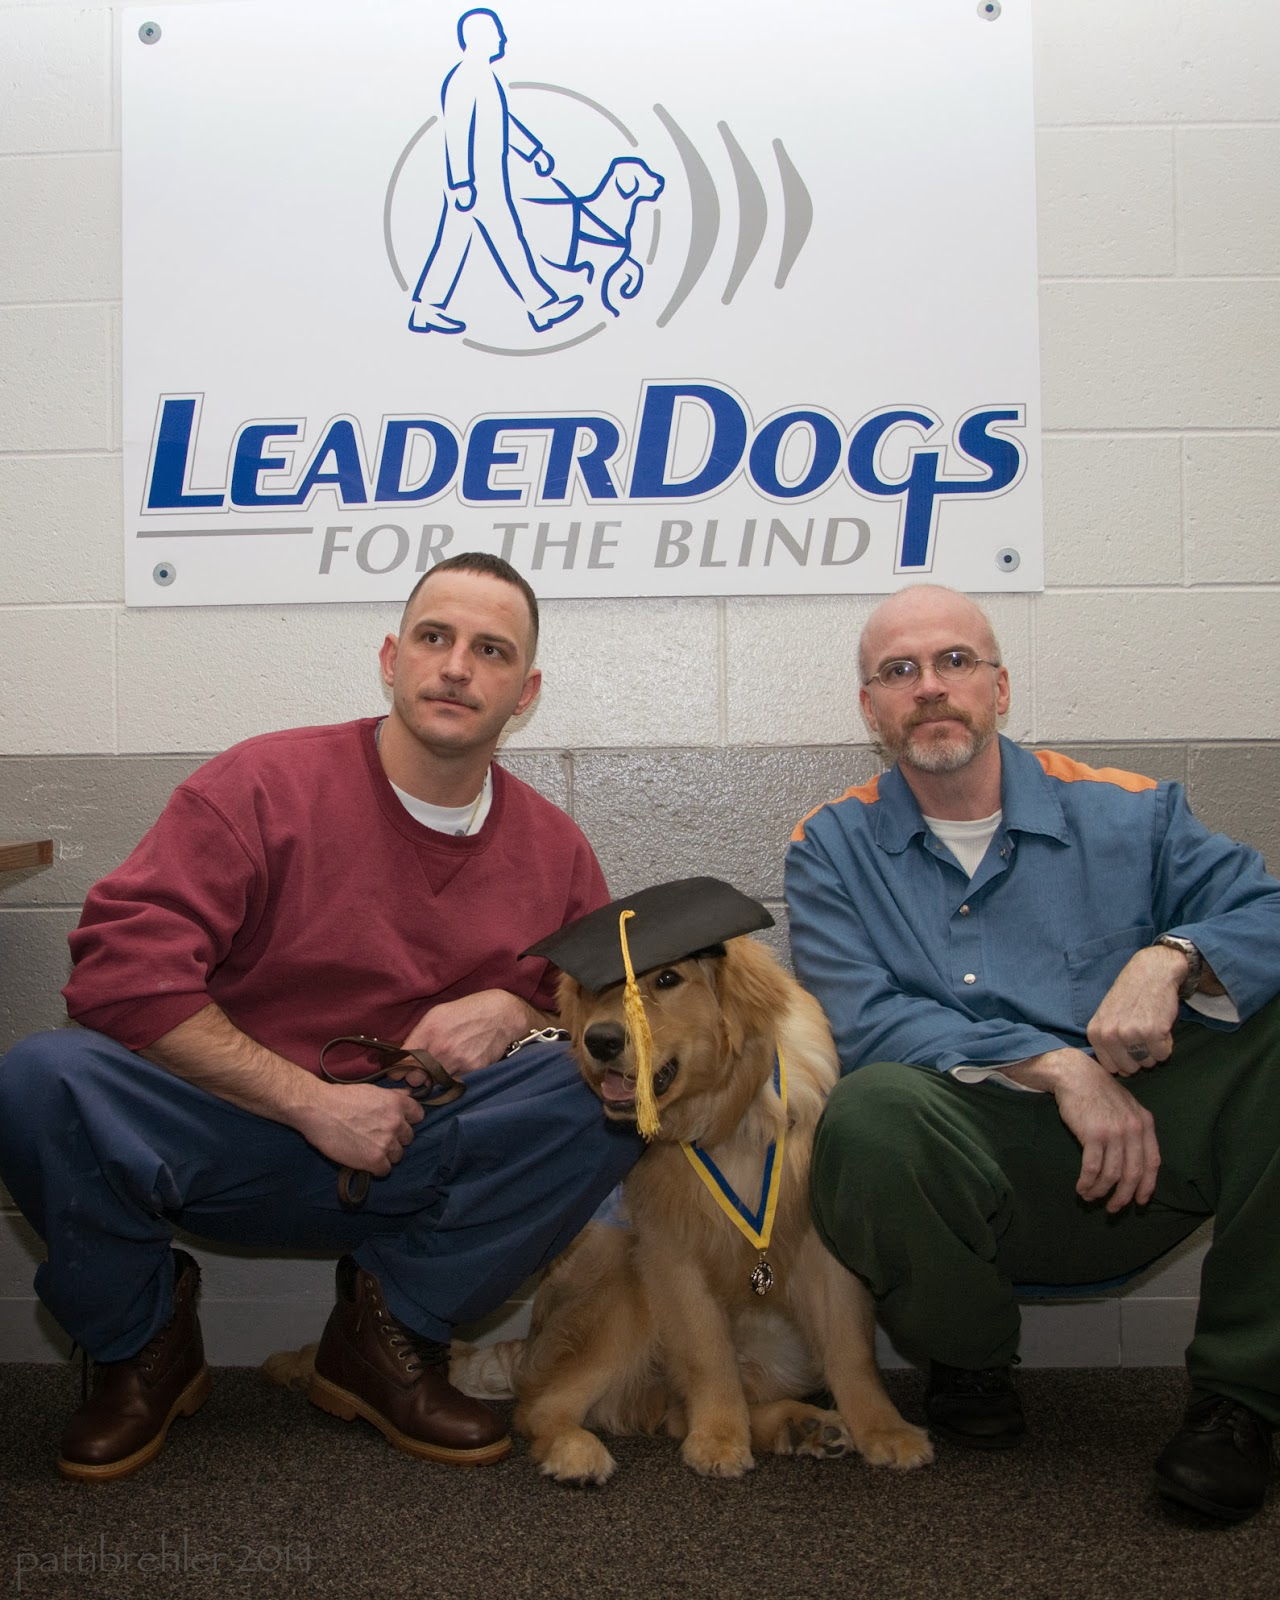 Two men are sqatting with the same golden retriever between them. The dog is sitting down and is wearing a black graduation cap and medal around its neck. The man on the left is wearing a maroon sweatshirt and blue pants. The man on the right is wearing a blue shirt and green pants. On the wall behind them is a white poster with blue letters that say Leader Dogs for the Blind, with the Leader Dogs logo above it of a person with a guide dog.